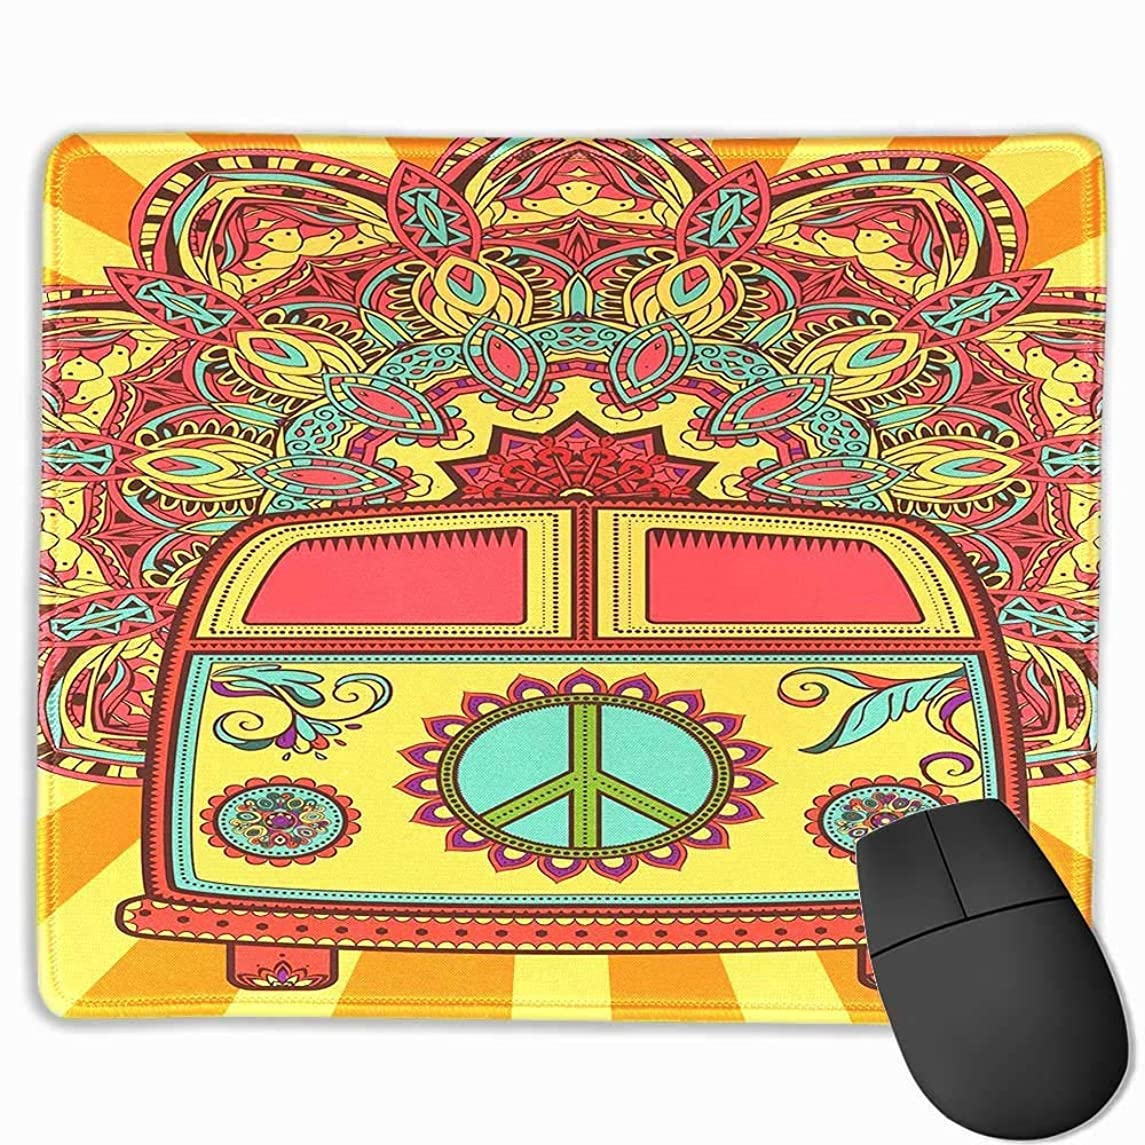 LIminglove Hippie Vintage Mini Van Ornamental Backdrop Peace Sign Gaming Mouse Pad,Non-Slip and Dust-Proof Mouse,Funny Creative Mouse pad